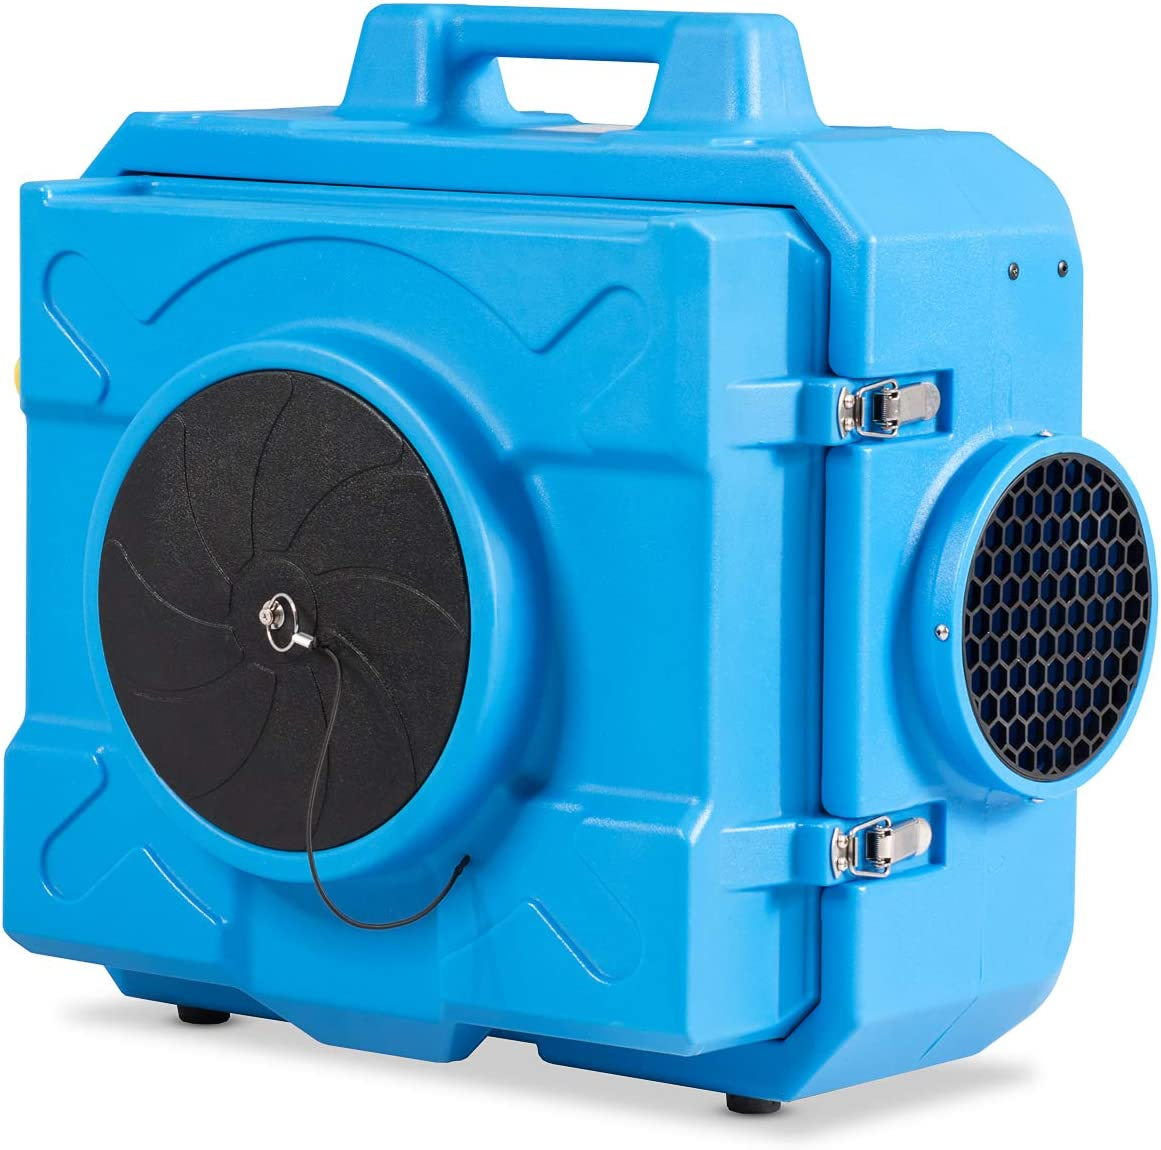 COSTWAY Industrial Commercial Air Scrubber, Heavy Duty Air Purifier, Air Machine for Water Damage Restoration Fire Disaster Interior Decoration, Air Filtration System Air Cleaner Blue